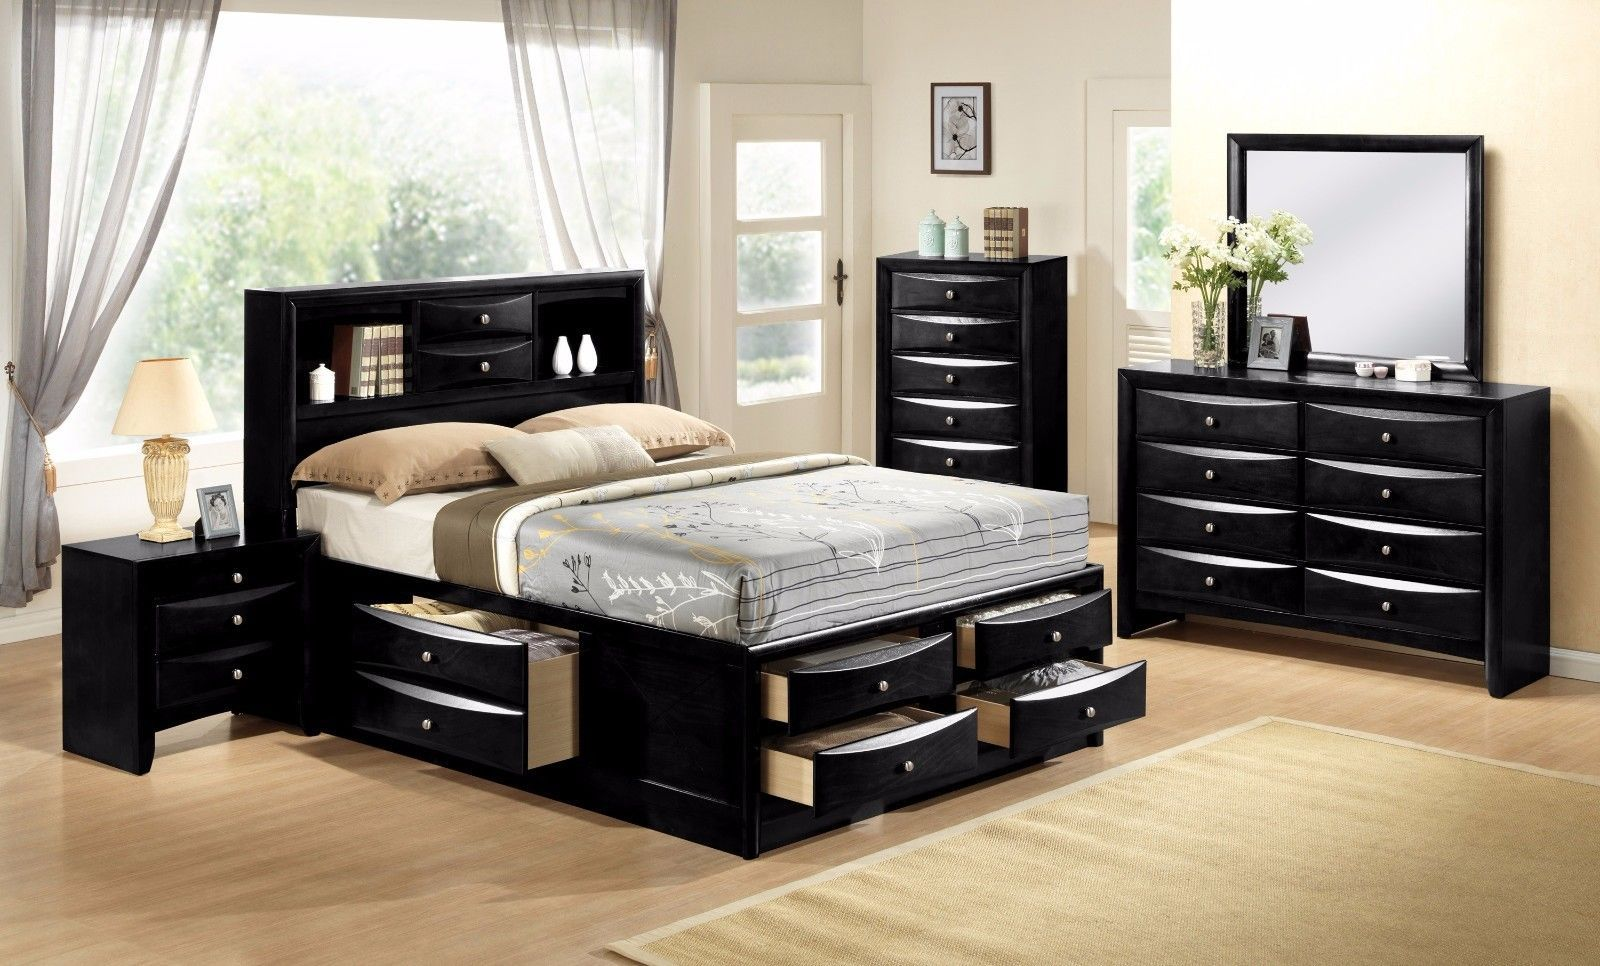 Crown Mark RB4285 Emily Storage Queen Size Bedroom Set 5pc. Contemporary Style